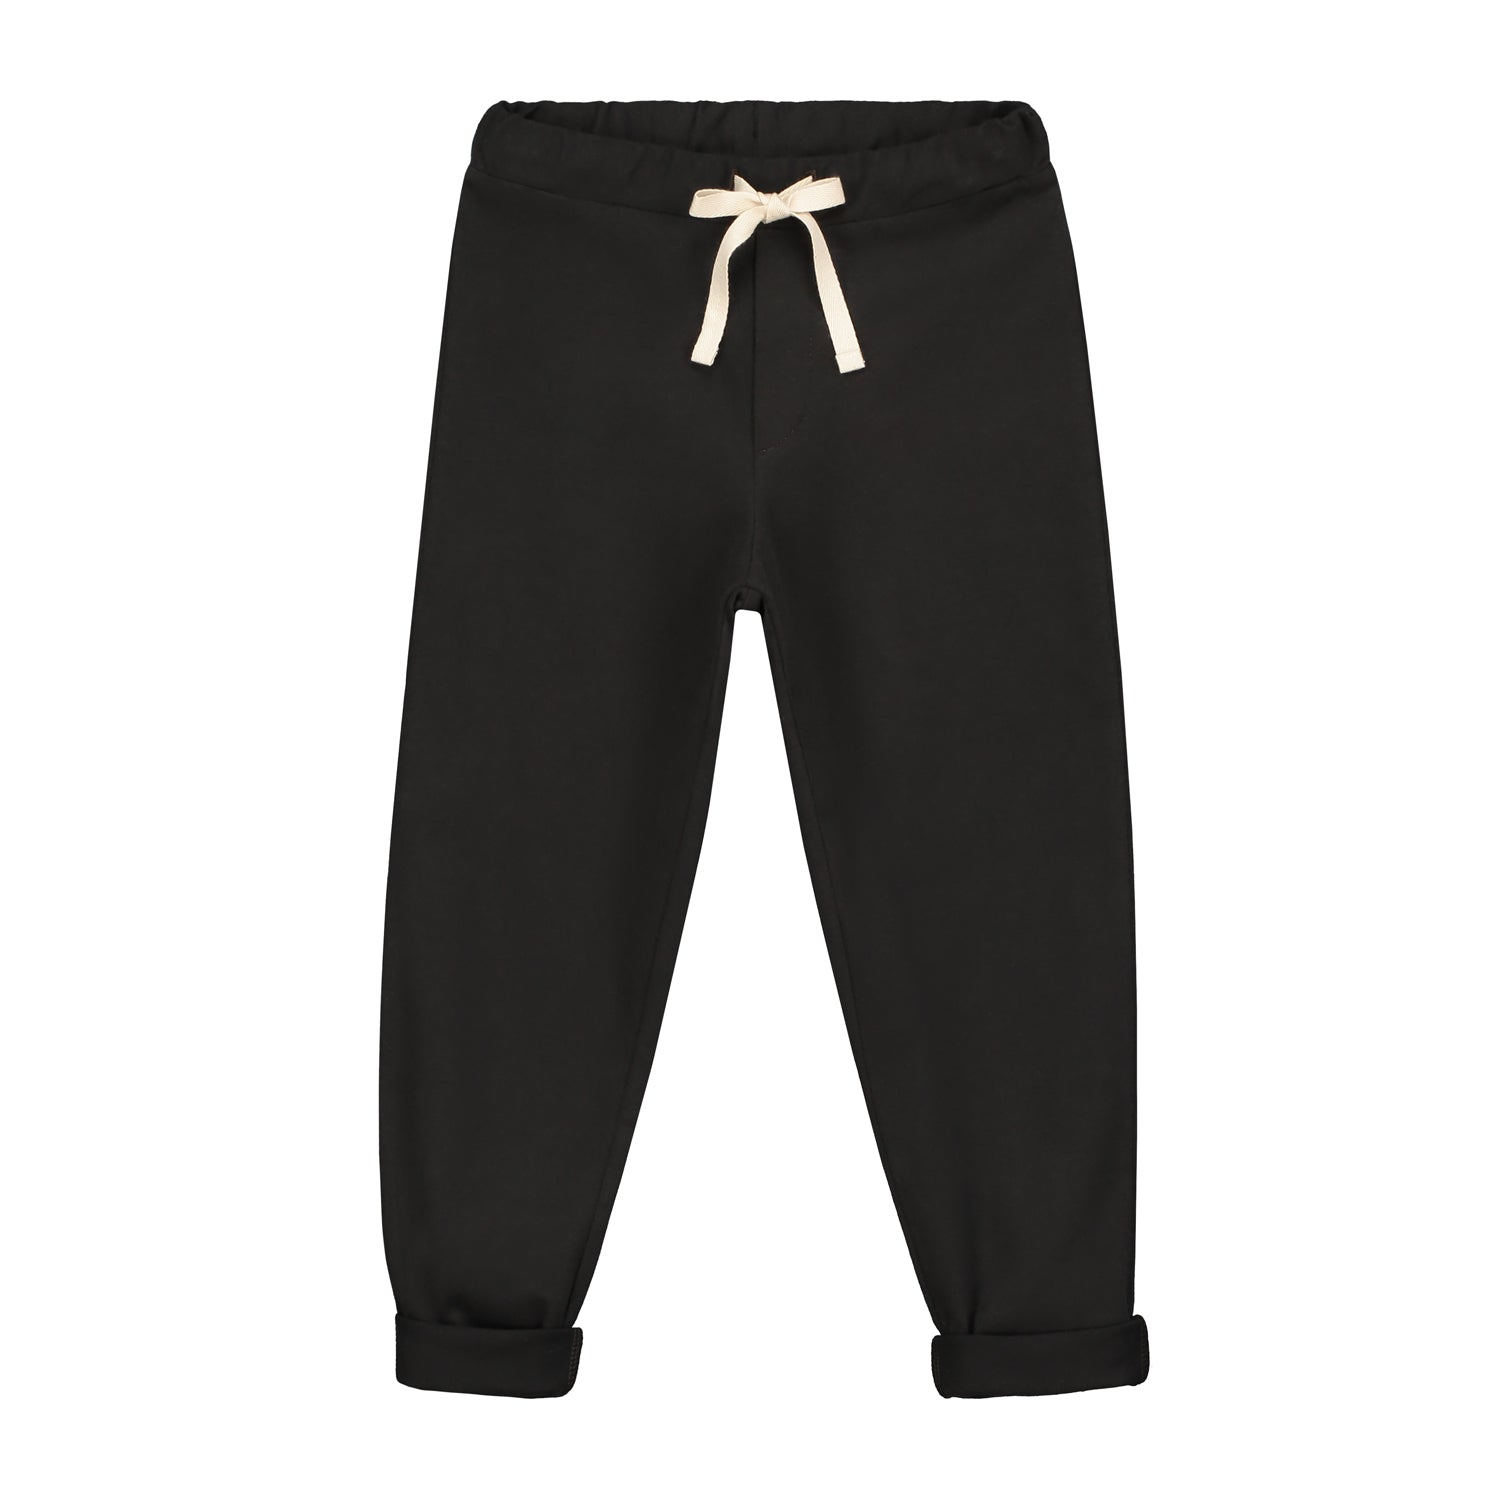 Pants Relaxed Nearly Black